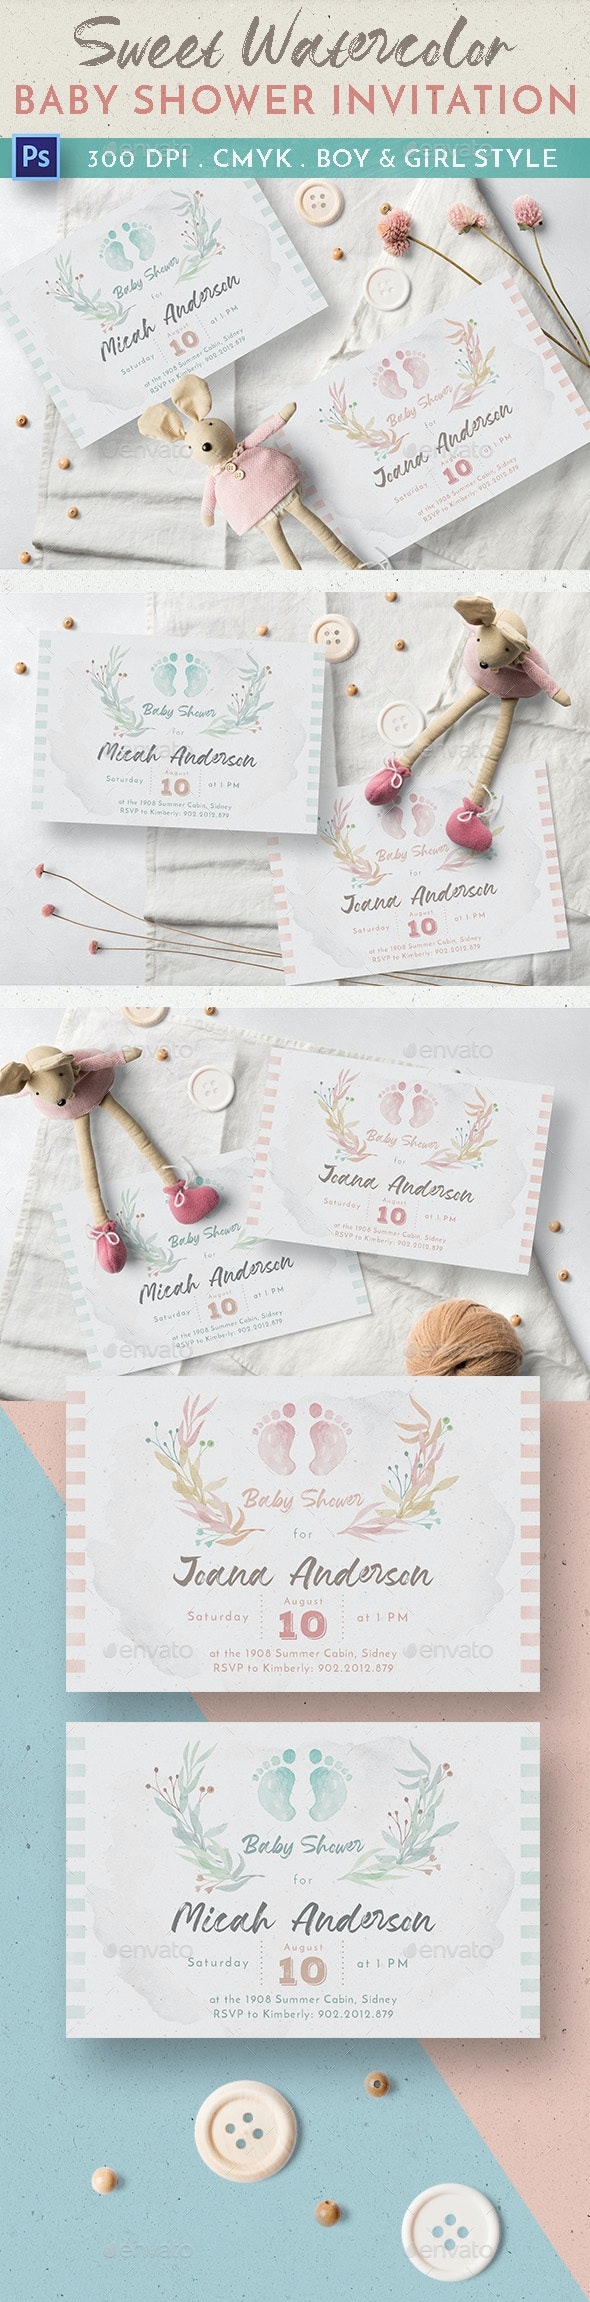 Sweet Watercolor Baby Shower Invitation - Invitations Cards & Invites